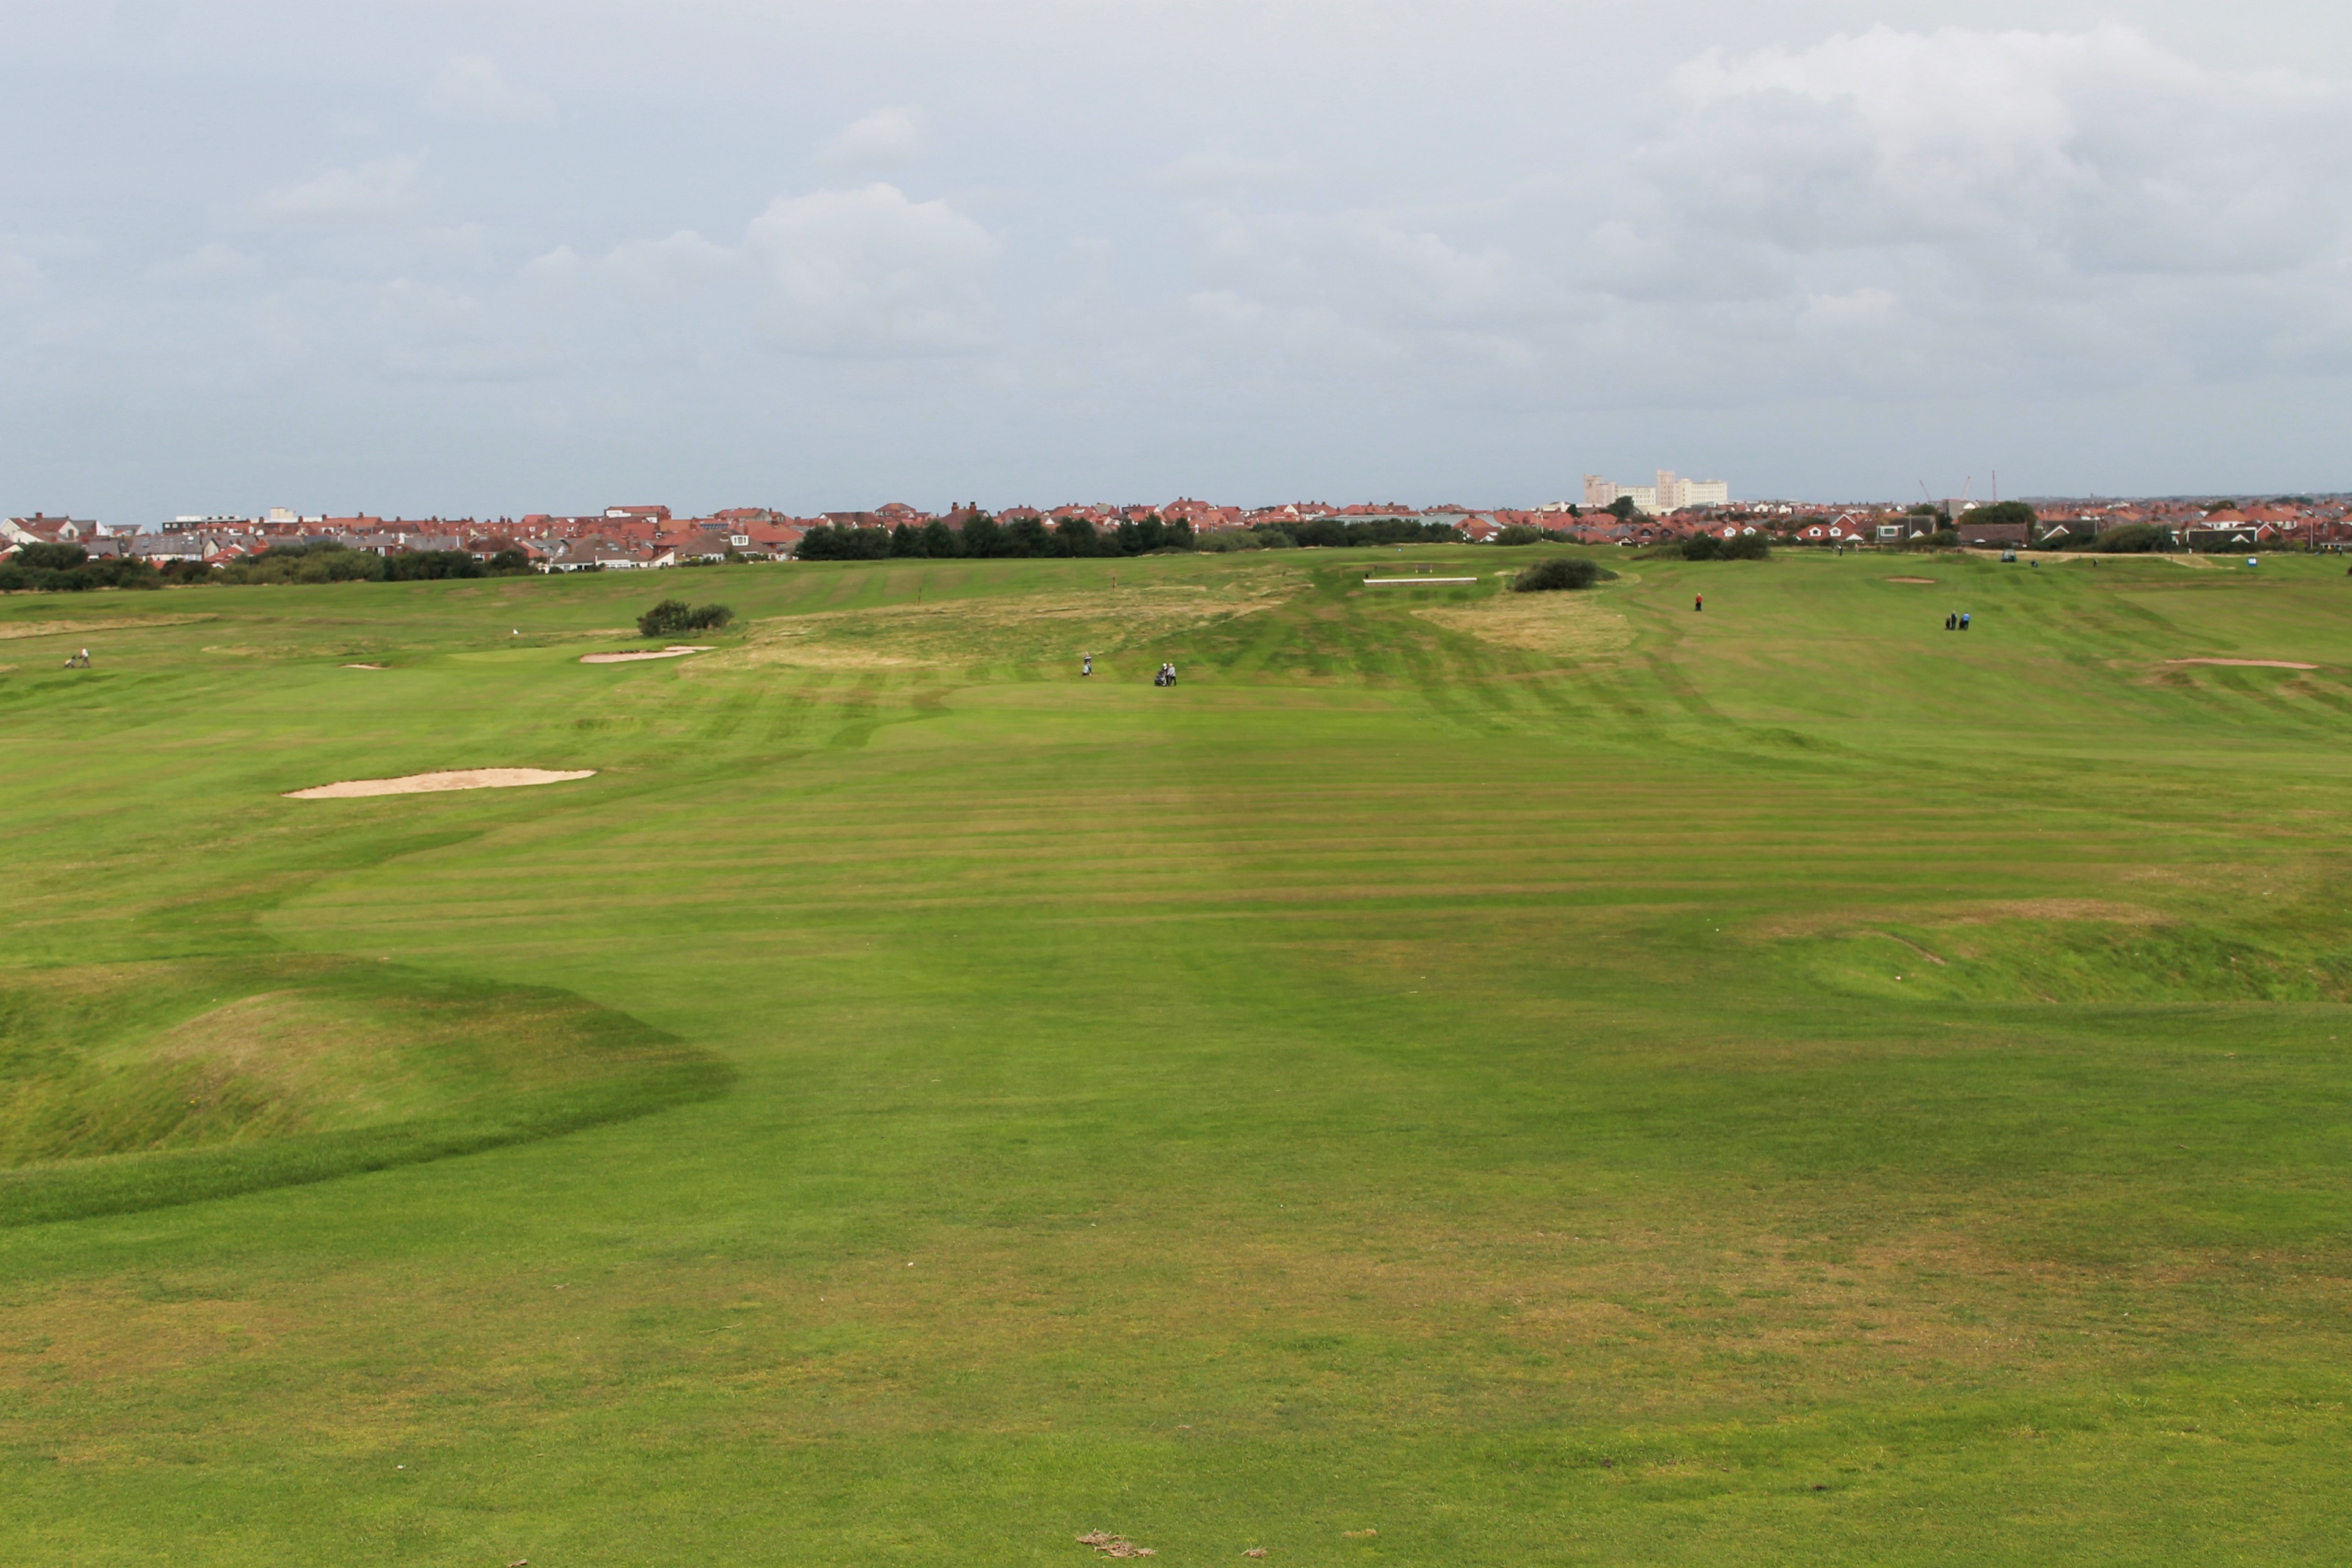 Greenmaster aids recovery at Blackpool North Shore Golf Club